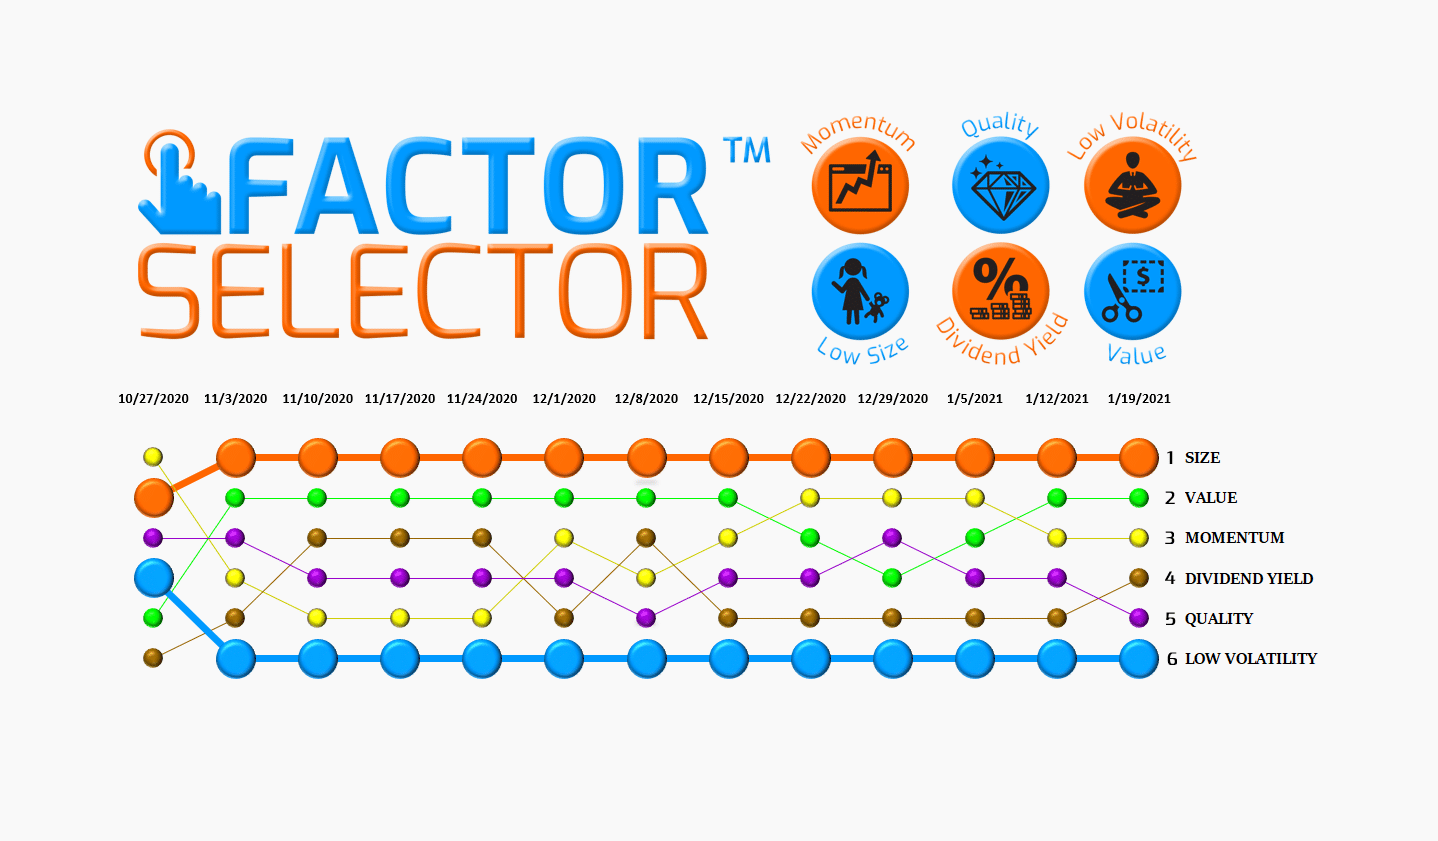 Factor Selector™  – 01/20/21 via @https://www.pinterest.com/market_scholars